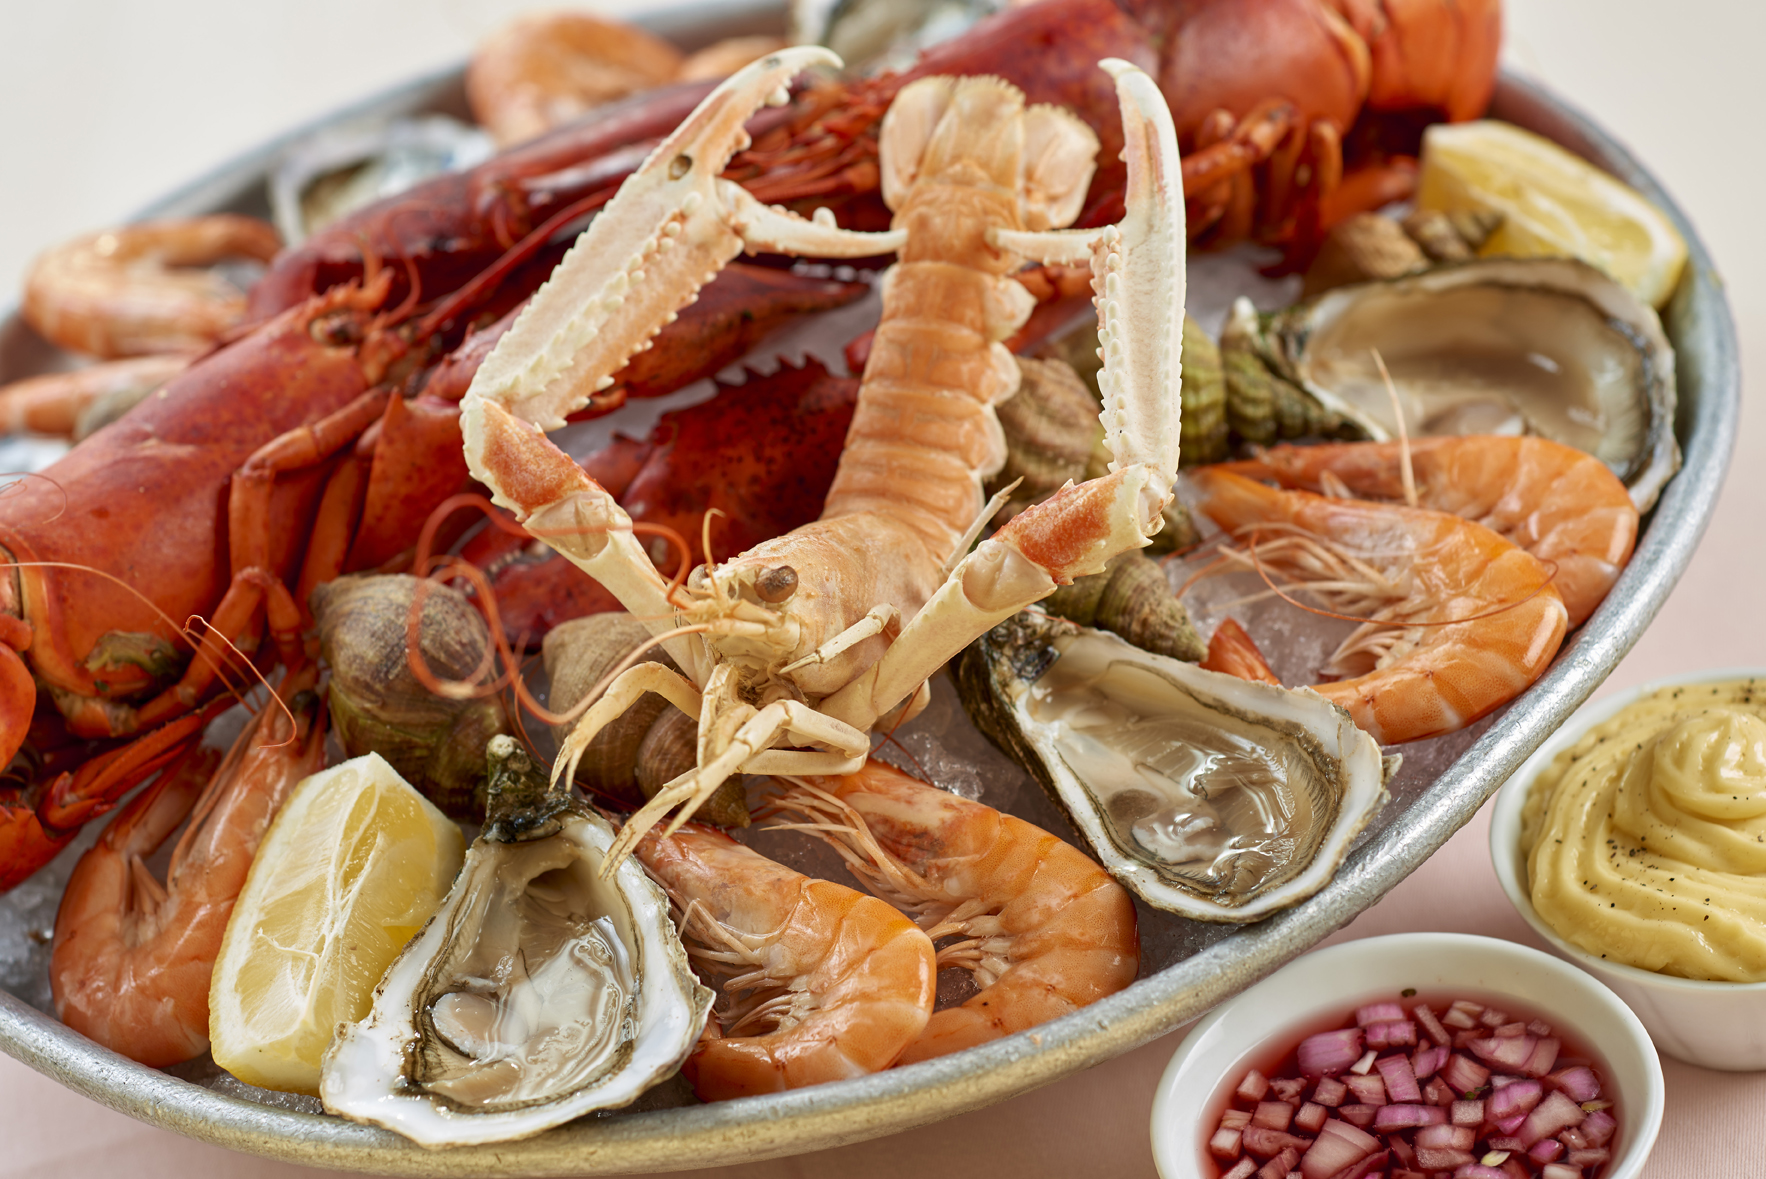 FRUITS DE MER & CRUSTACES